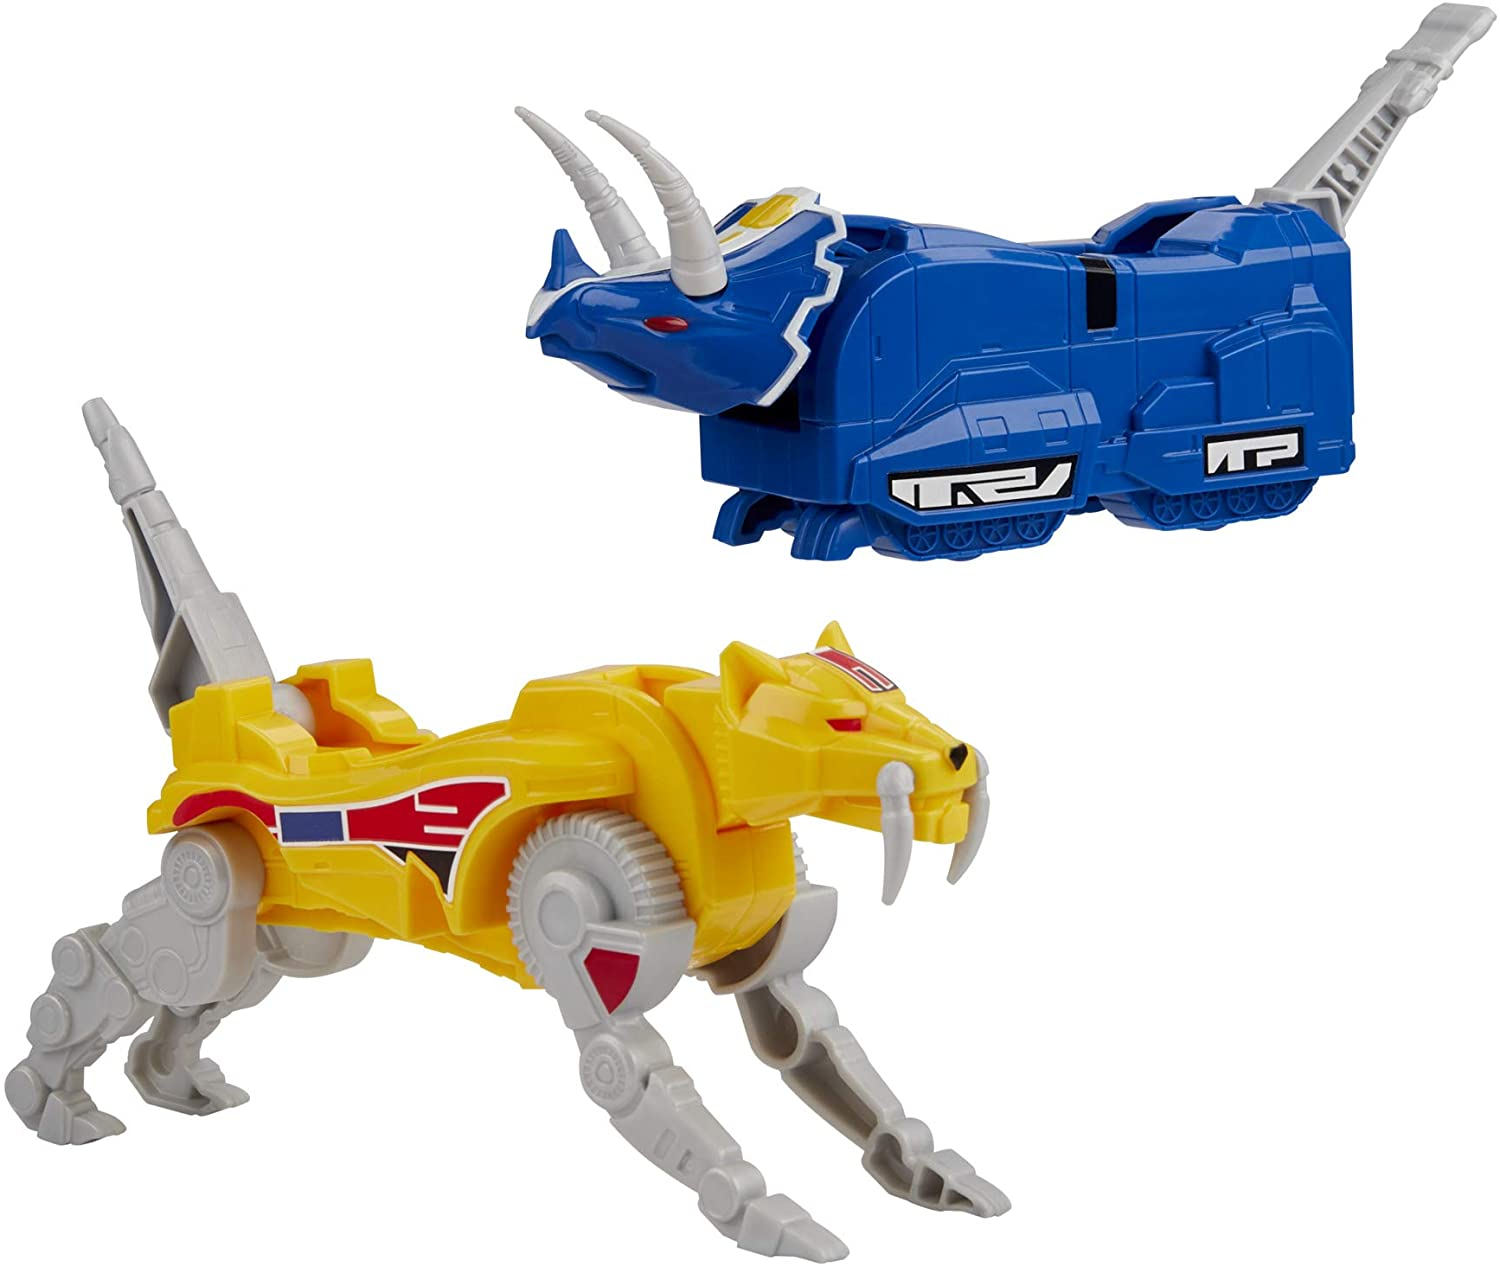 Power Rangers Mighty Morphin Triceratops Dinozord and Sabertooth Tiger Dinozord Toy 2-Pack